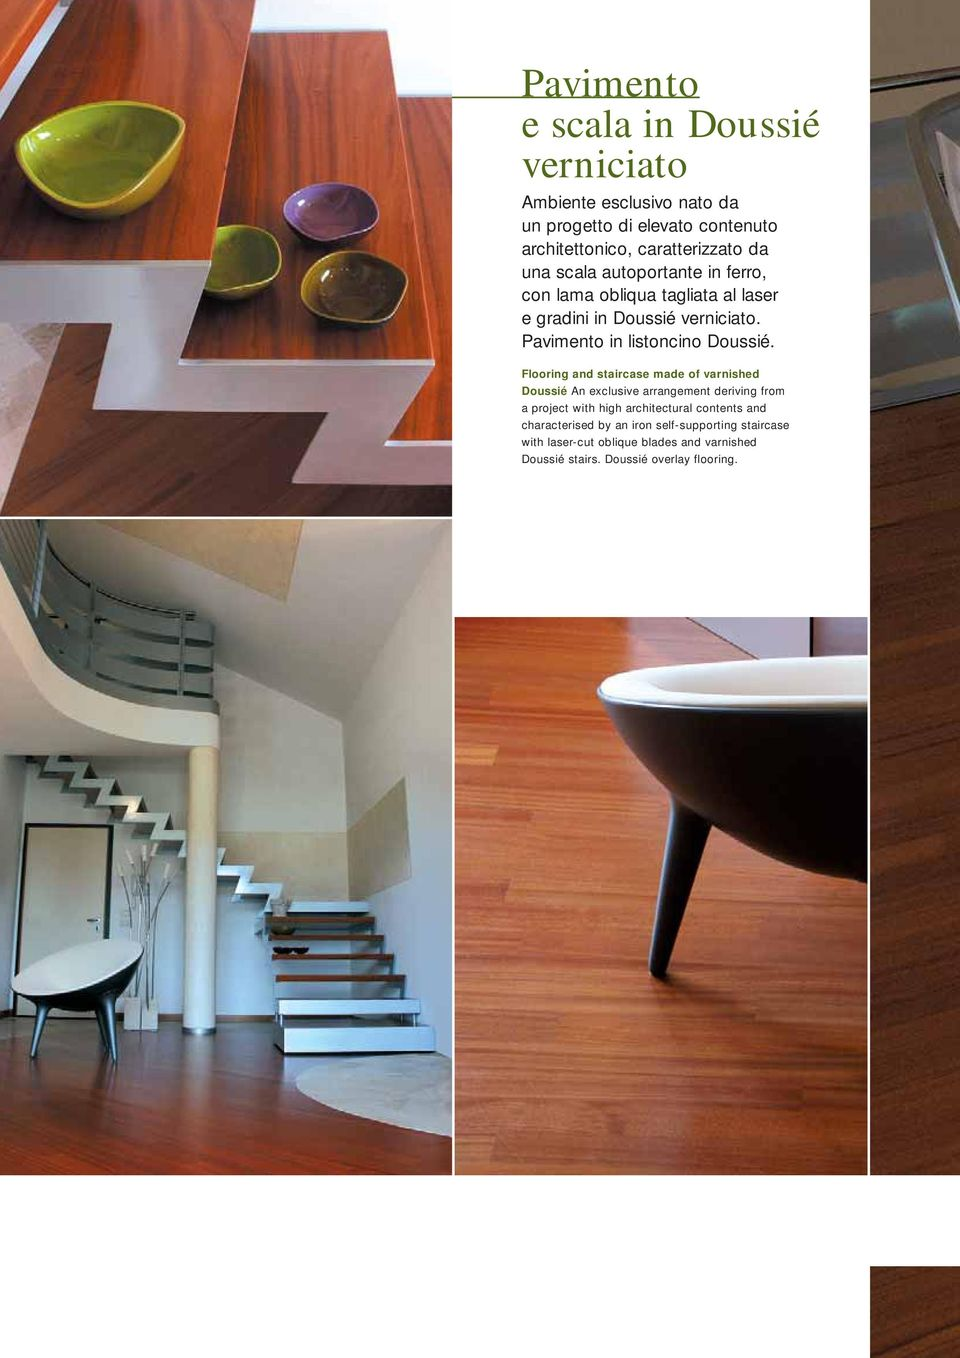 Flooring and staircase made of varnished Doussié An exclusive arrangement deriving from a project with high architectural contents and